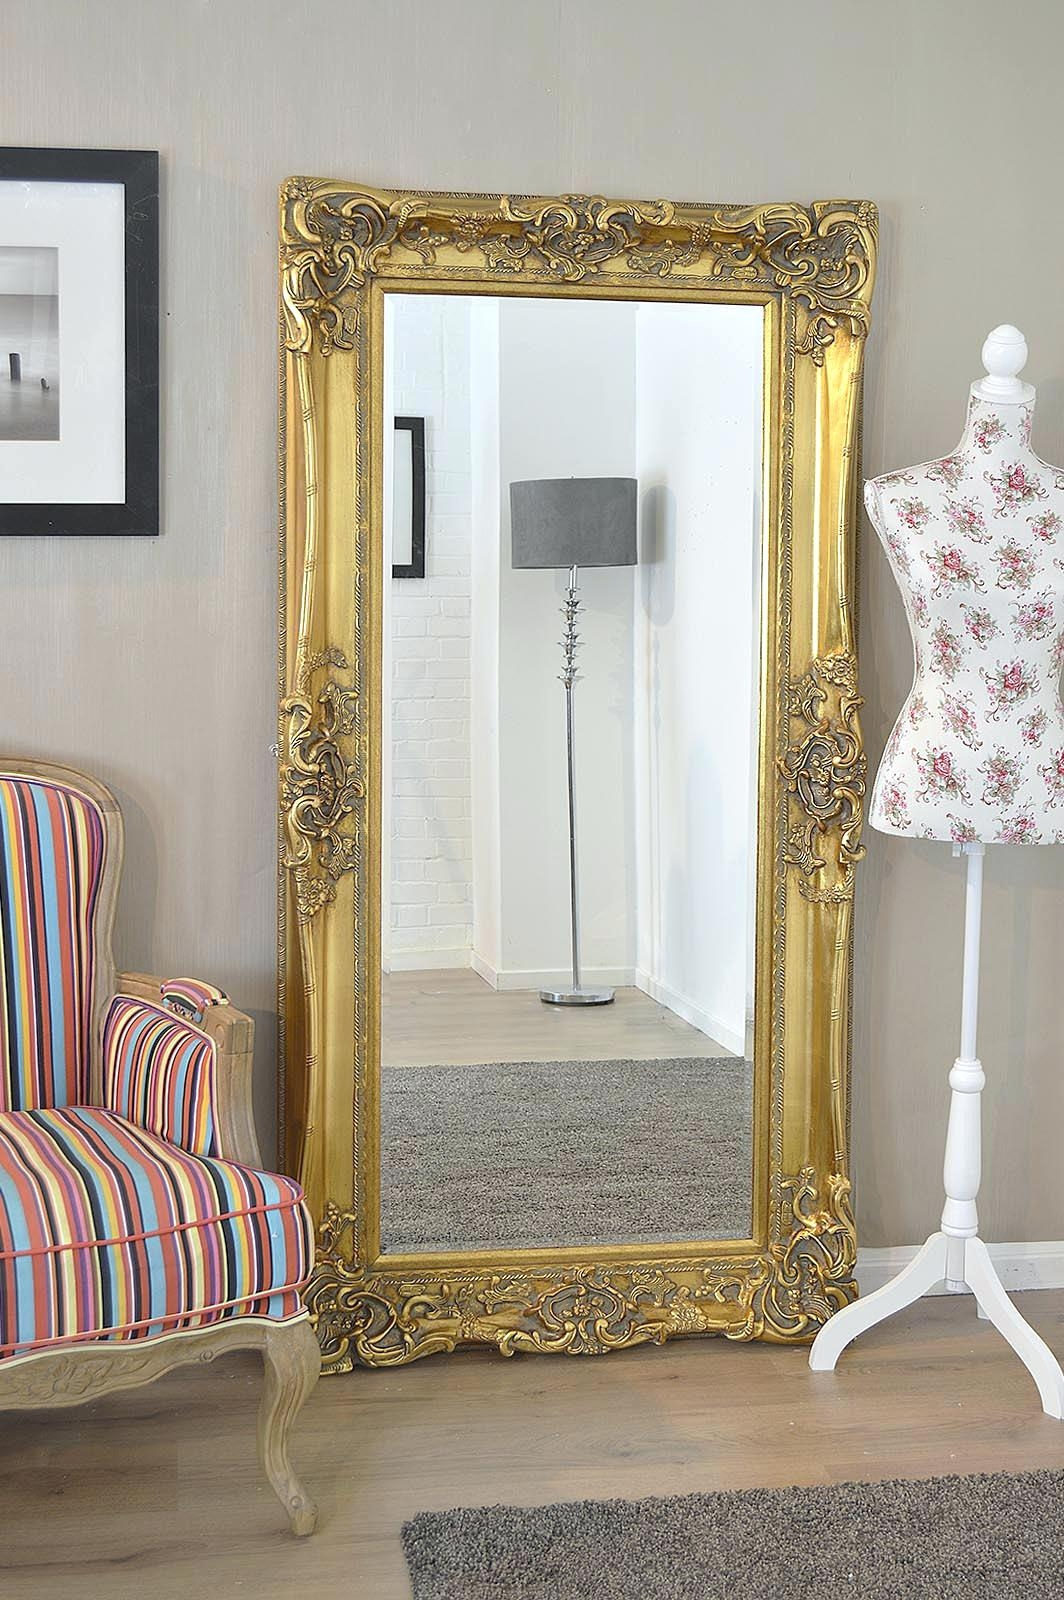 Large Antique Wall Mirror Wall Mirror Ideas For Large Antique Wall Mirrors (Image 11 of 15)